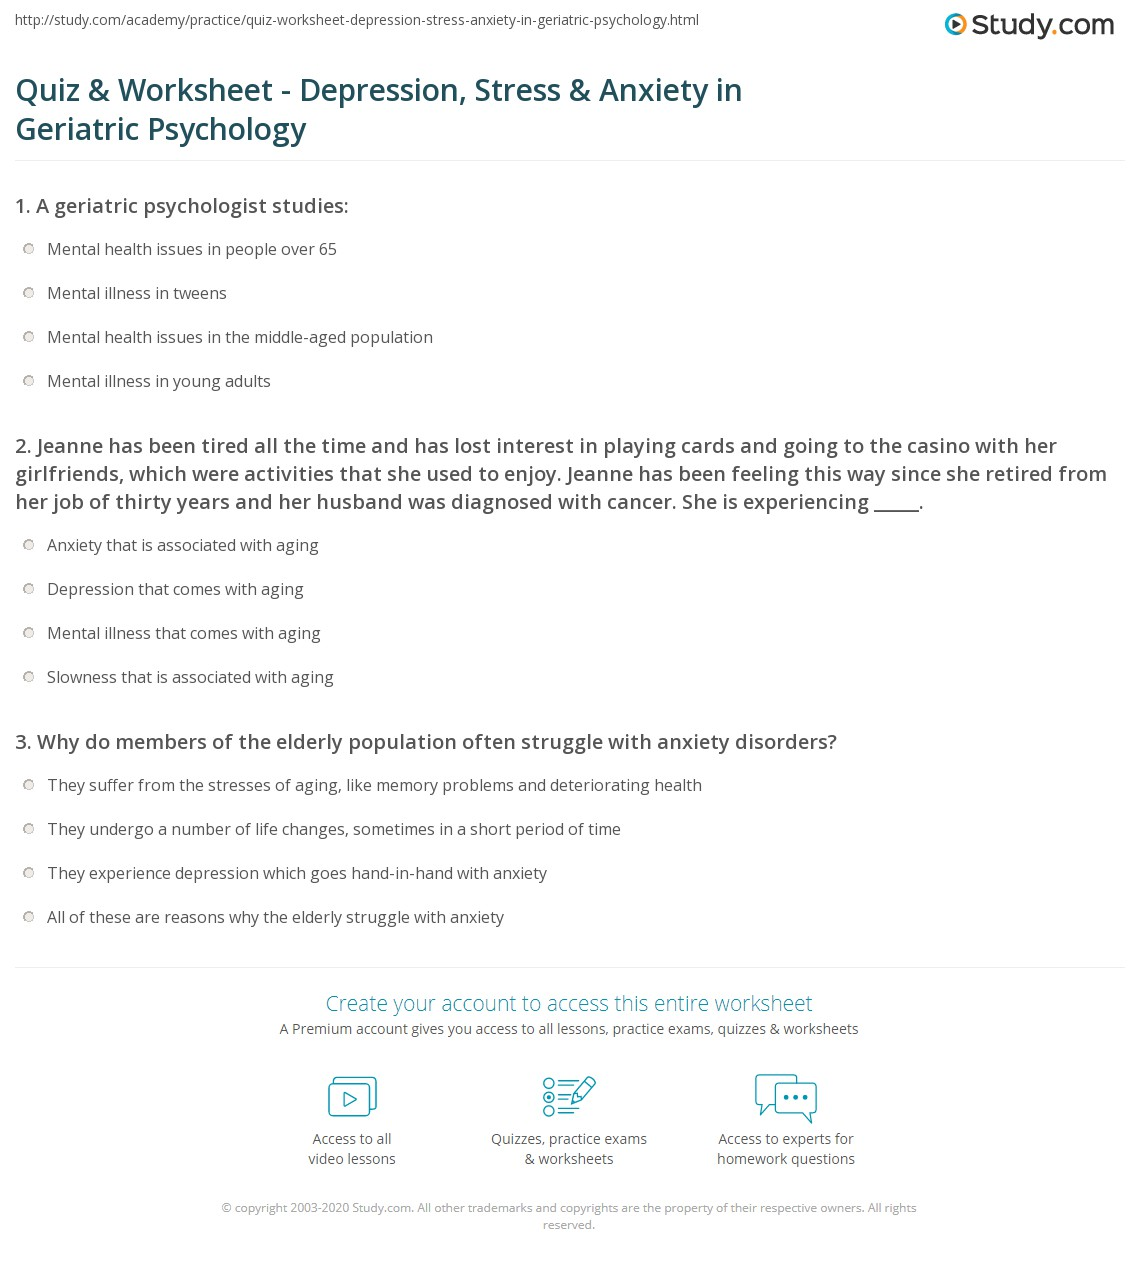 Quiz & Worksheet - Depression, Stress & Anxiety in Geriatric ...